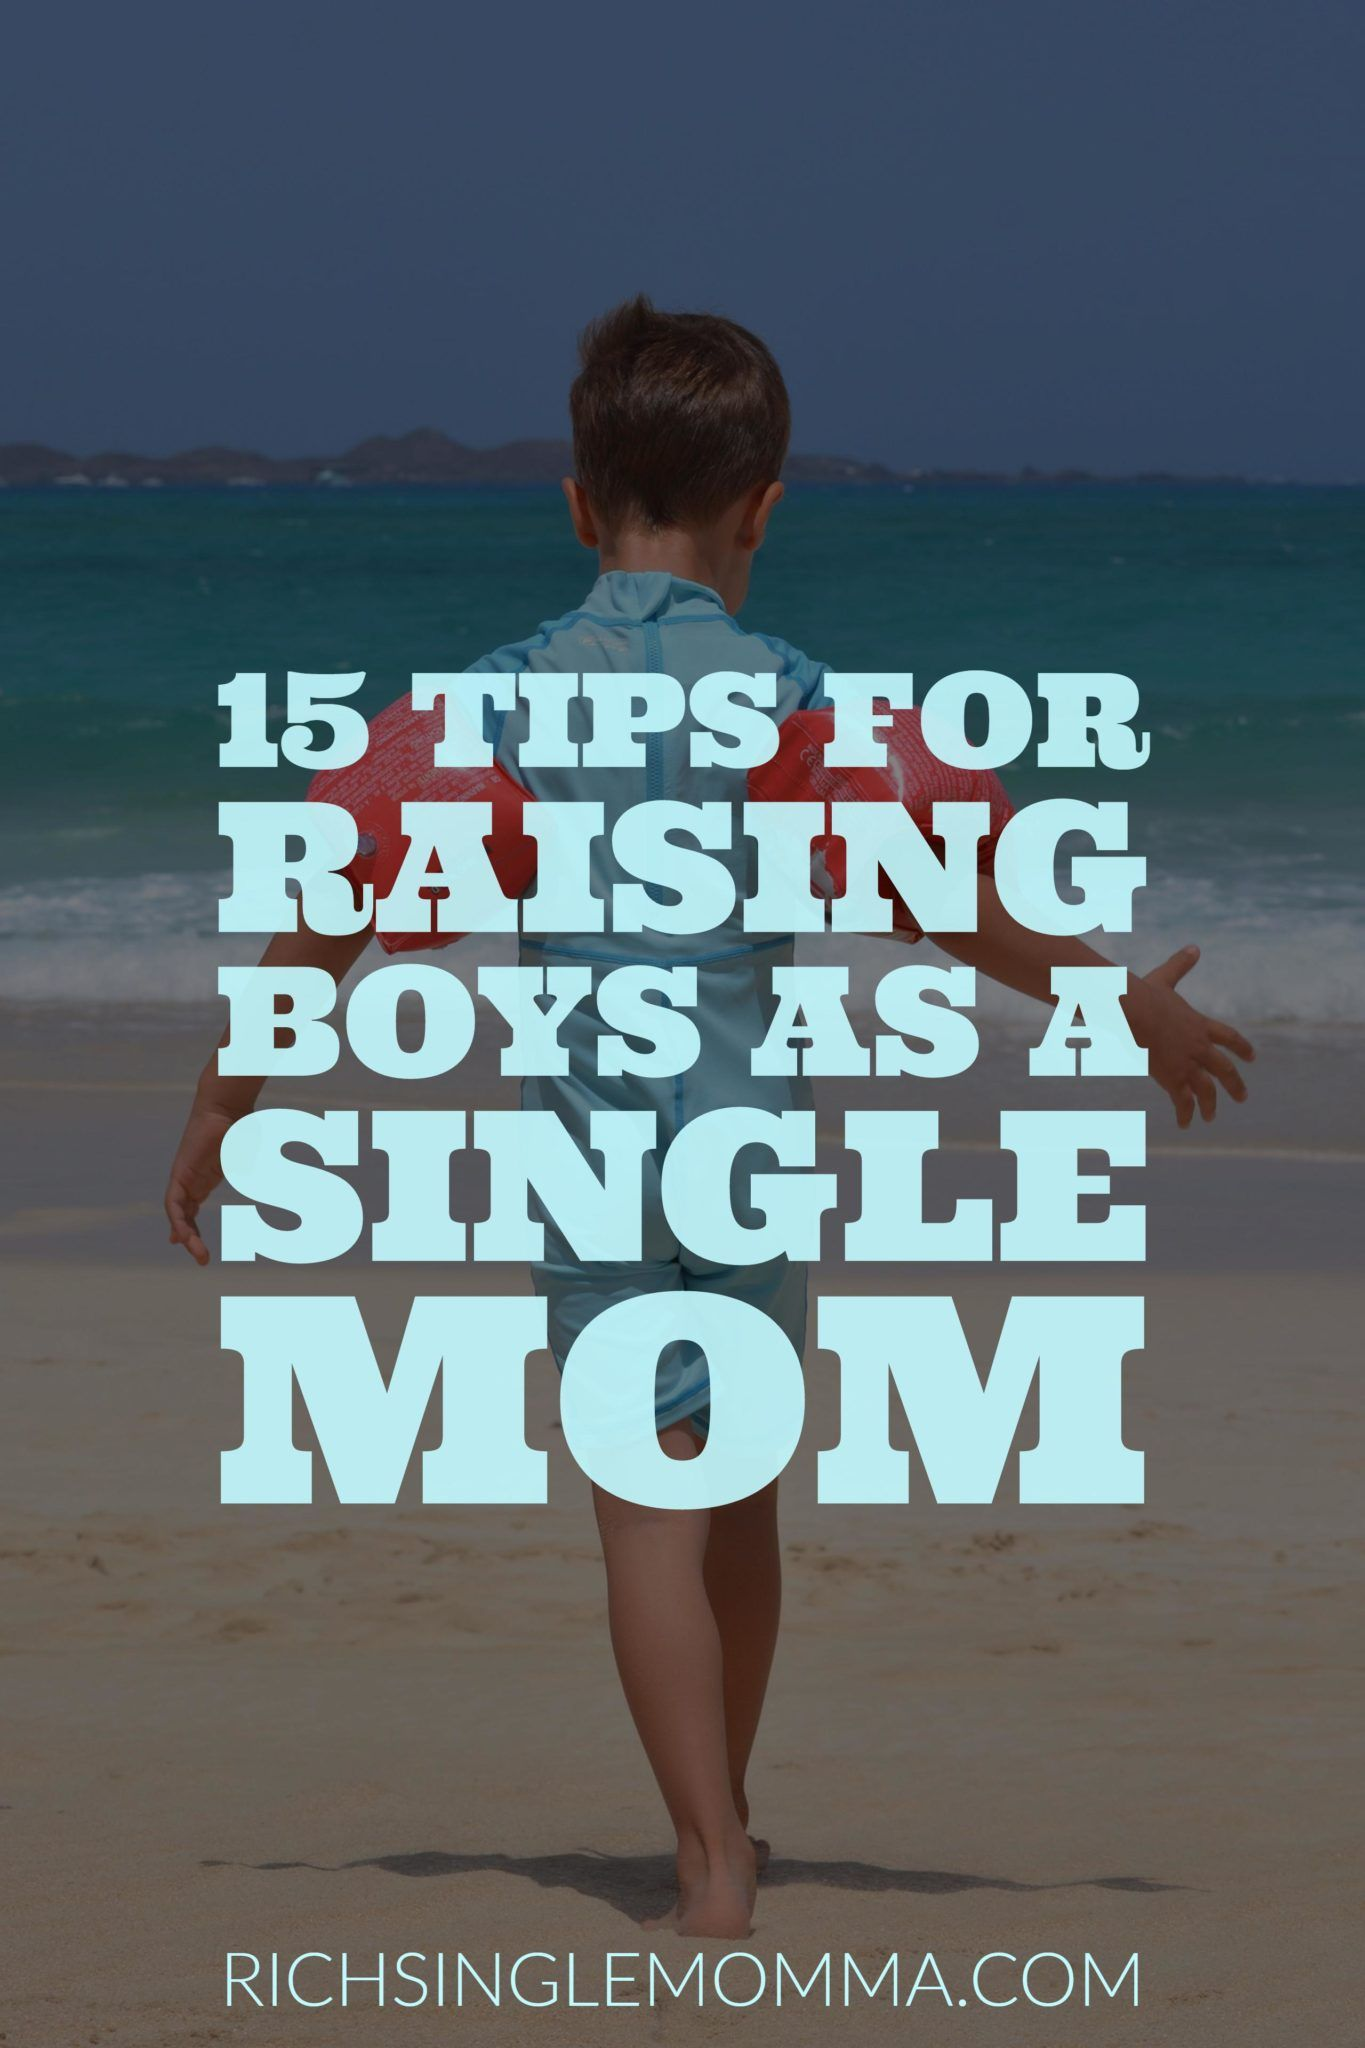 15 Tips for Single Parents